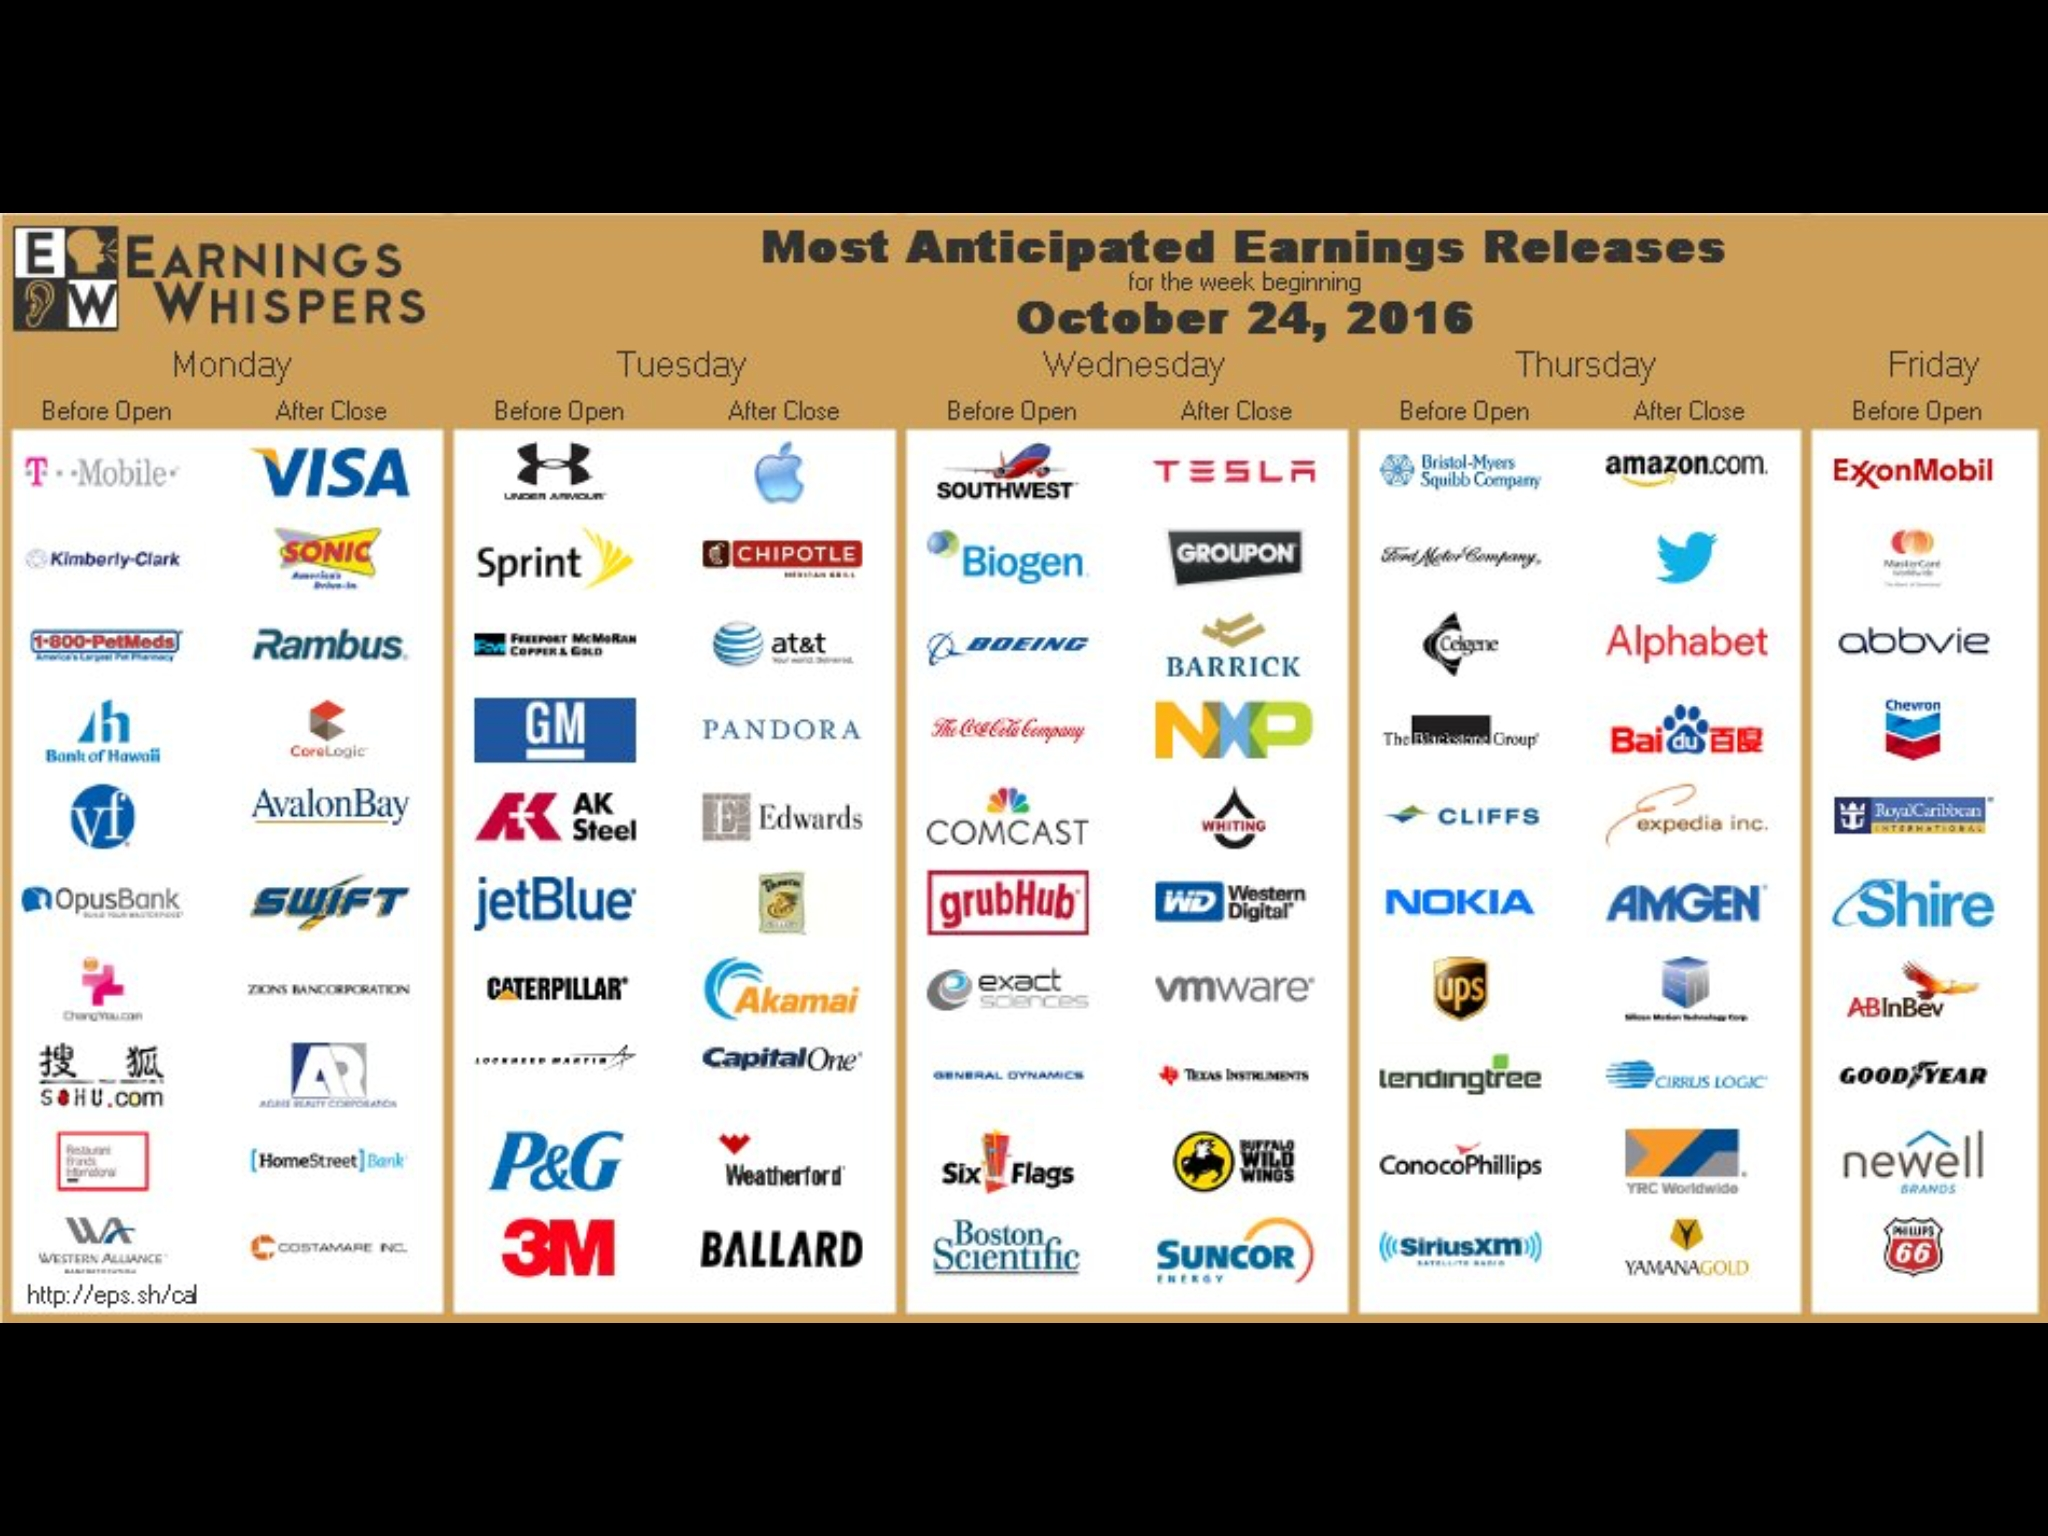 Cnbc Morning Report & Earnings Calendar 10/28/16 - Simply